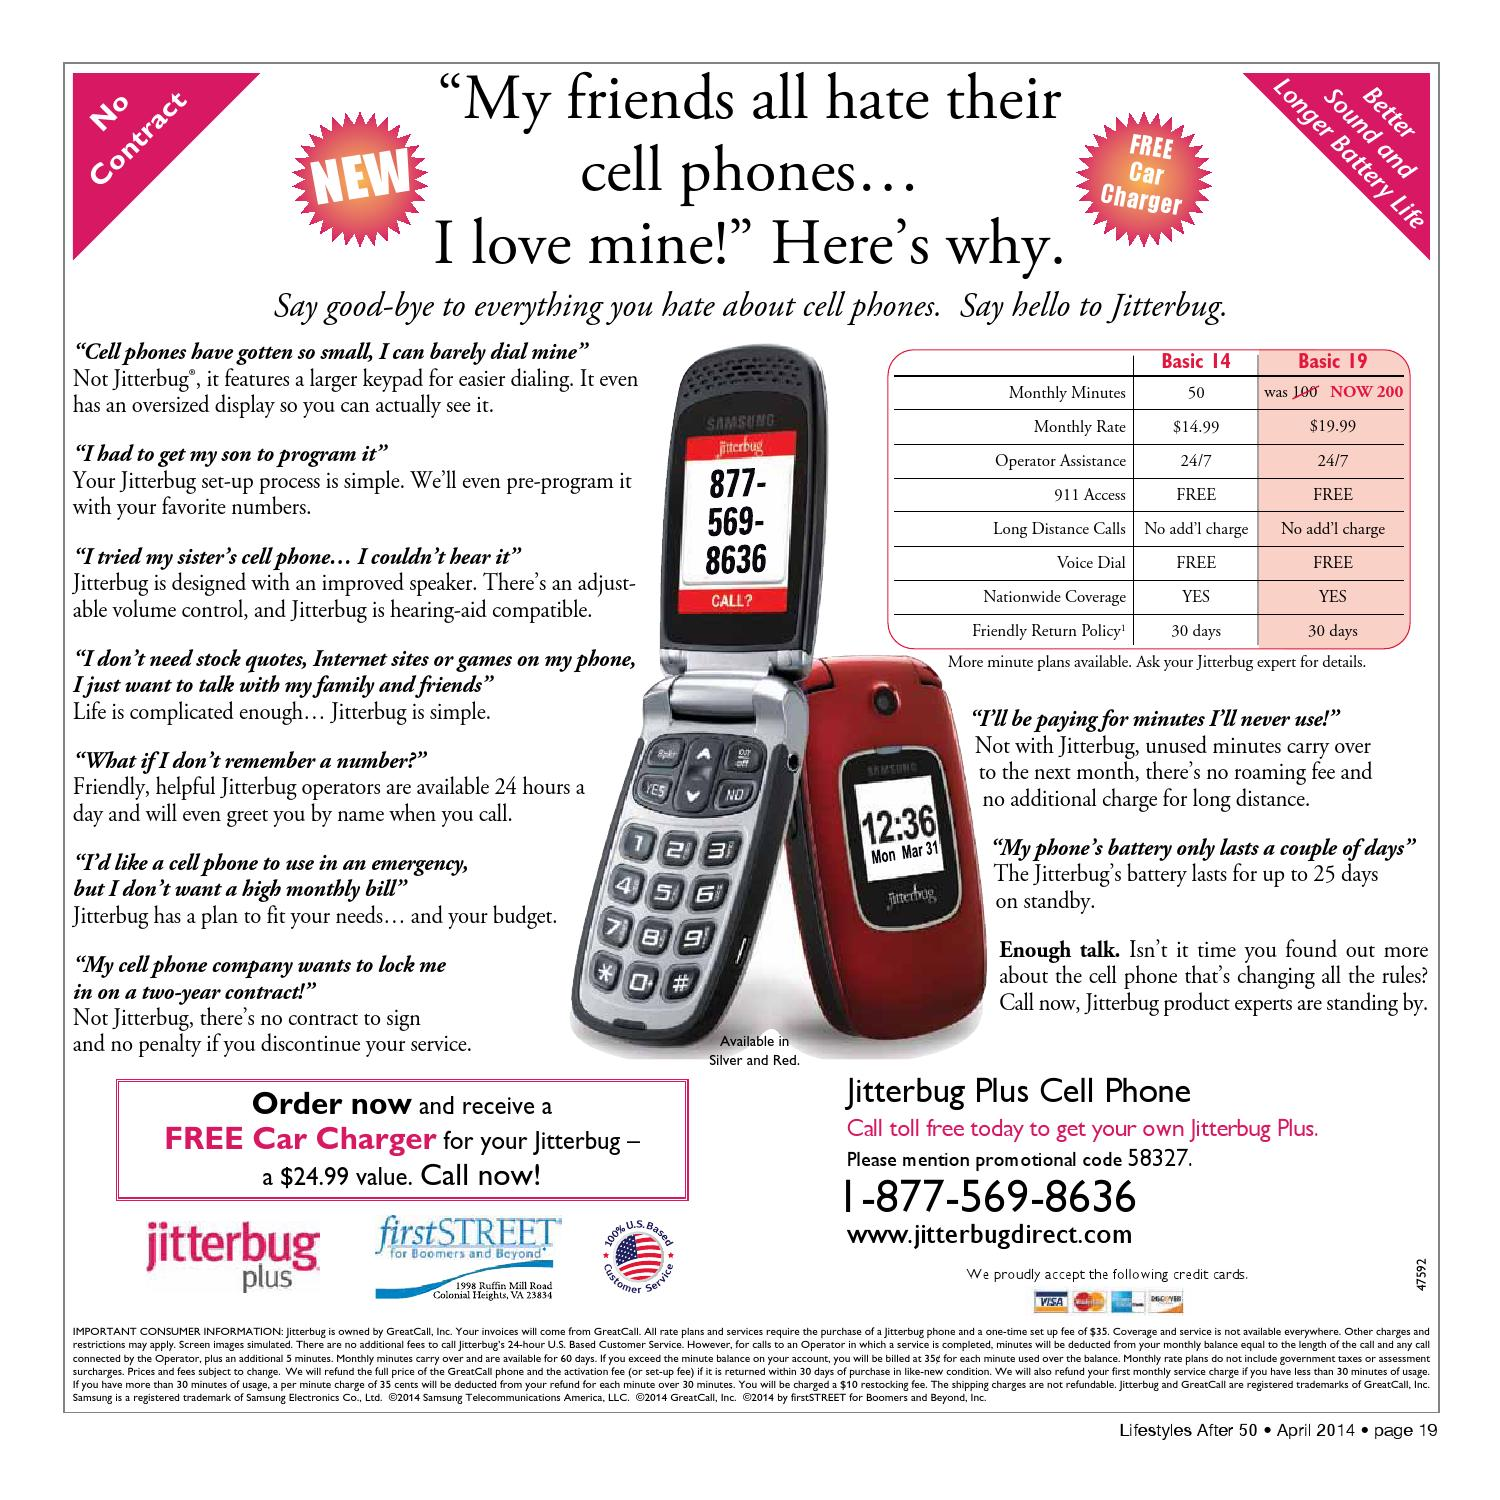 Jitterbug Phone Plans >> Lifestyles After 50 Marion Lake Sumter April 2014 Edition By